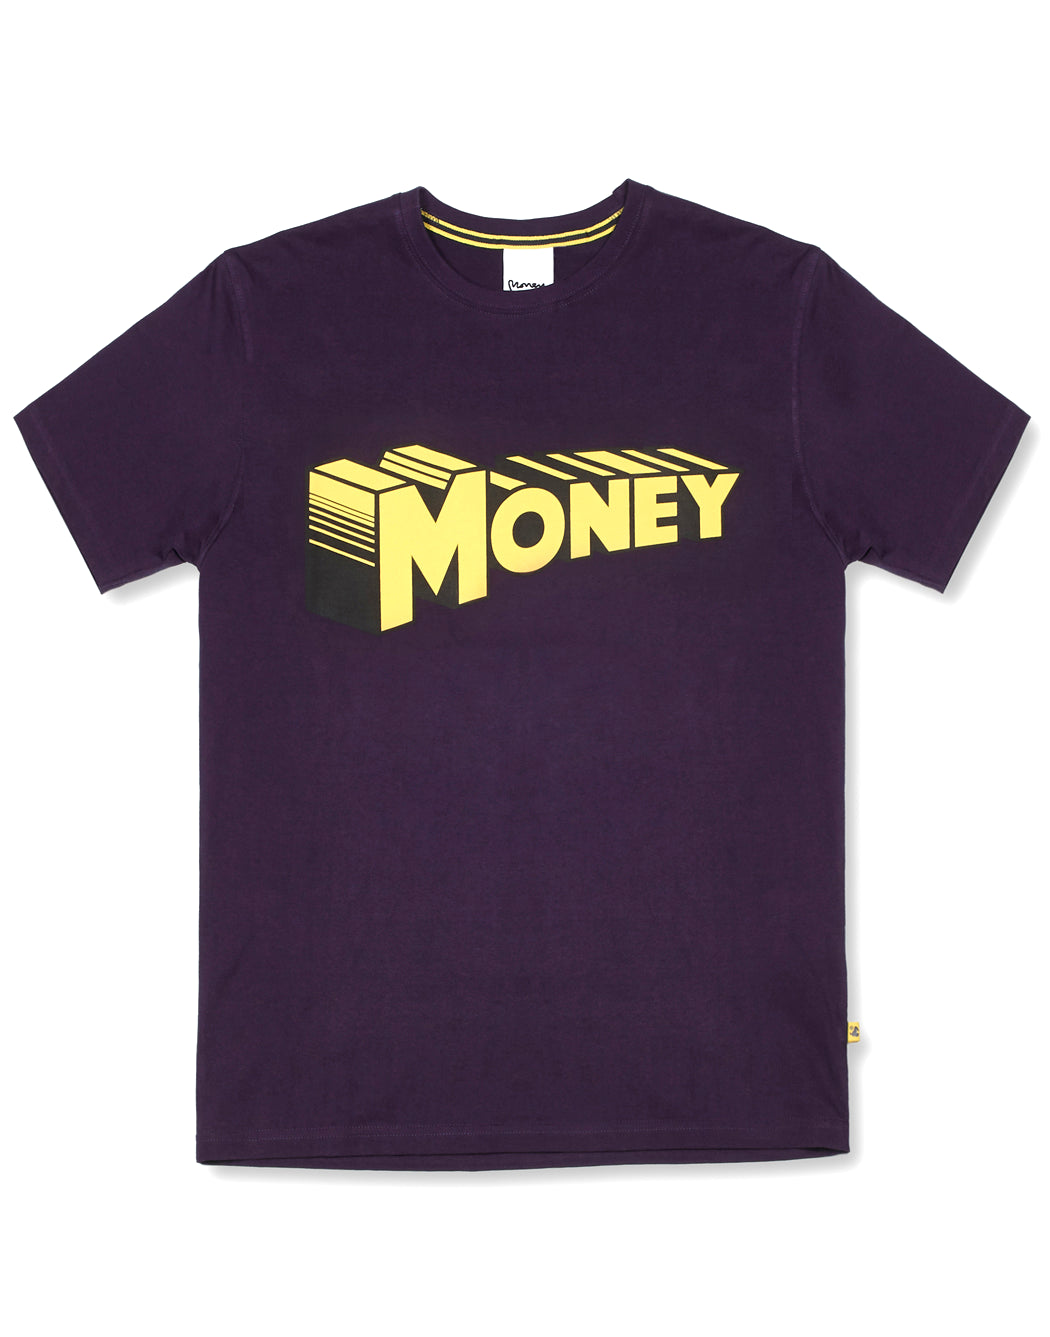 Money Clothing t-shirt in purple